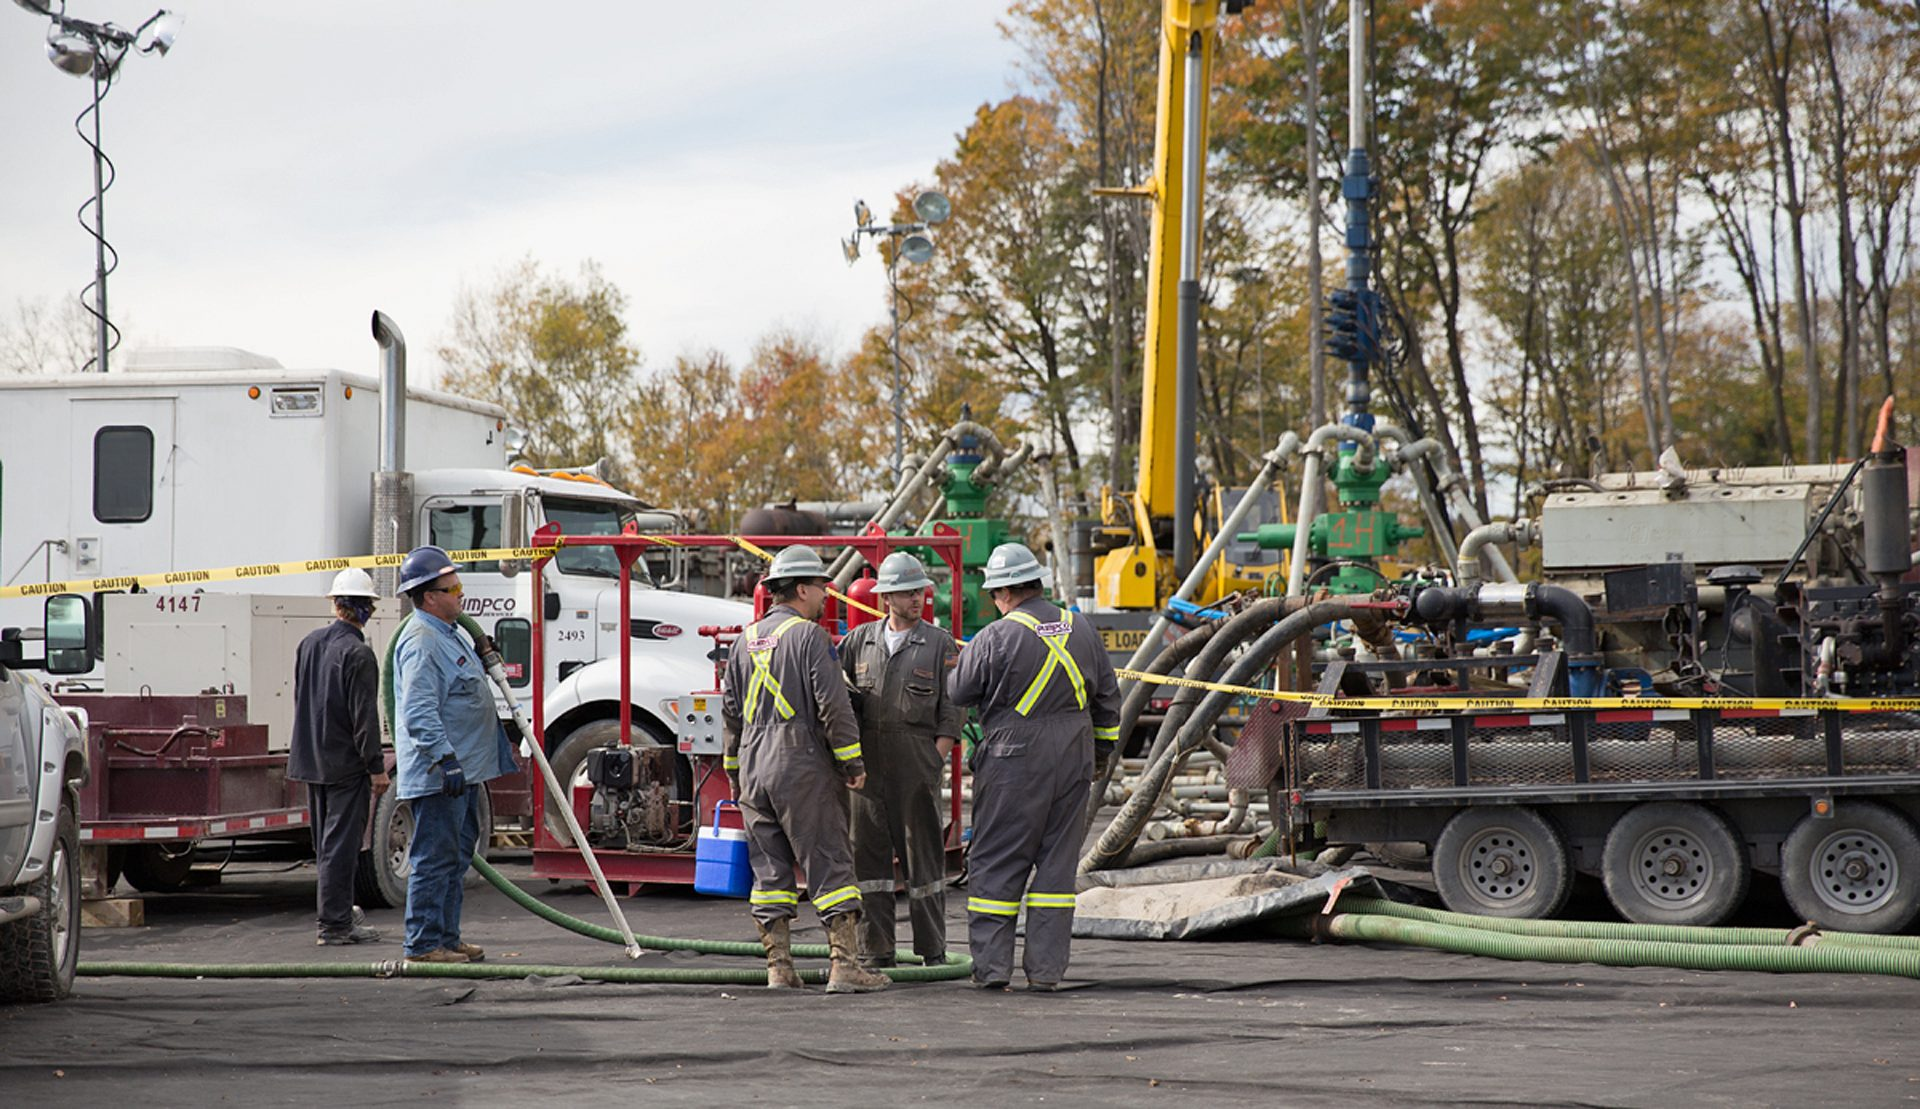 Workers vacuum fluids surrounding a frack site in Harford Township, Susquehanna County, Pa.